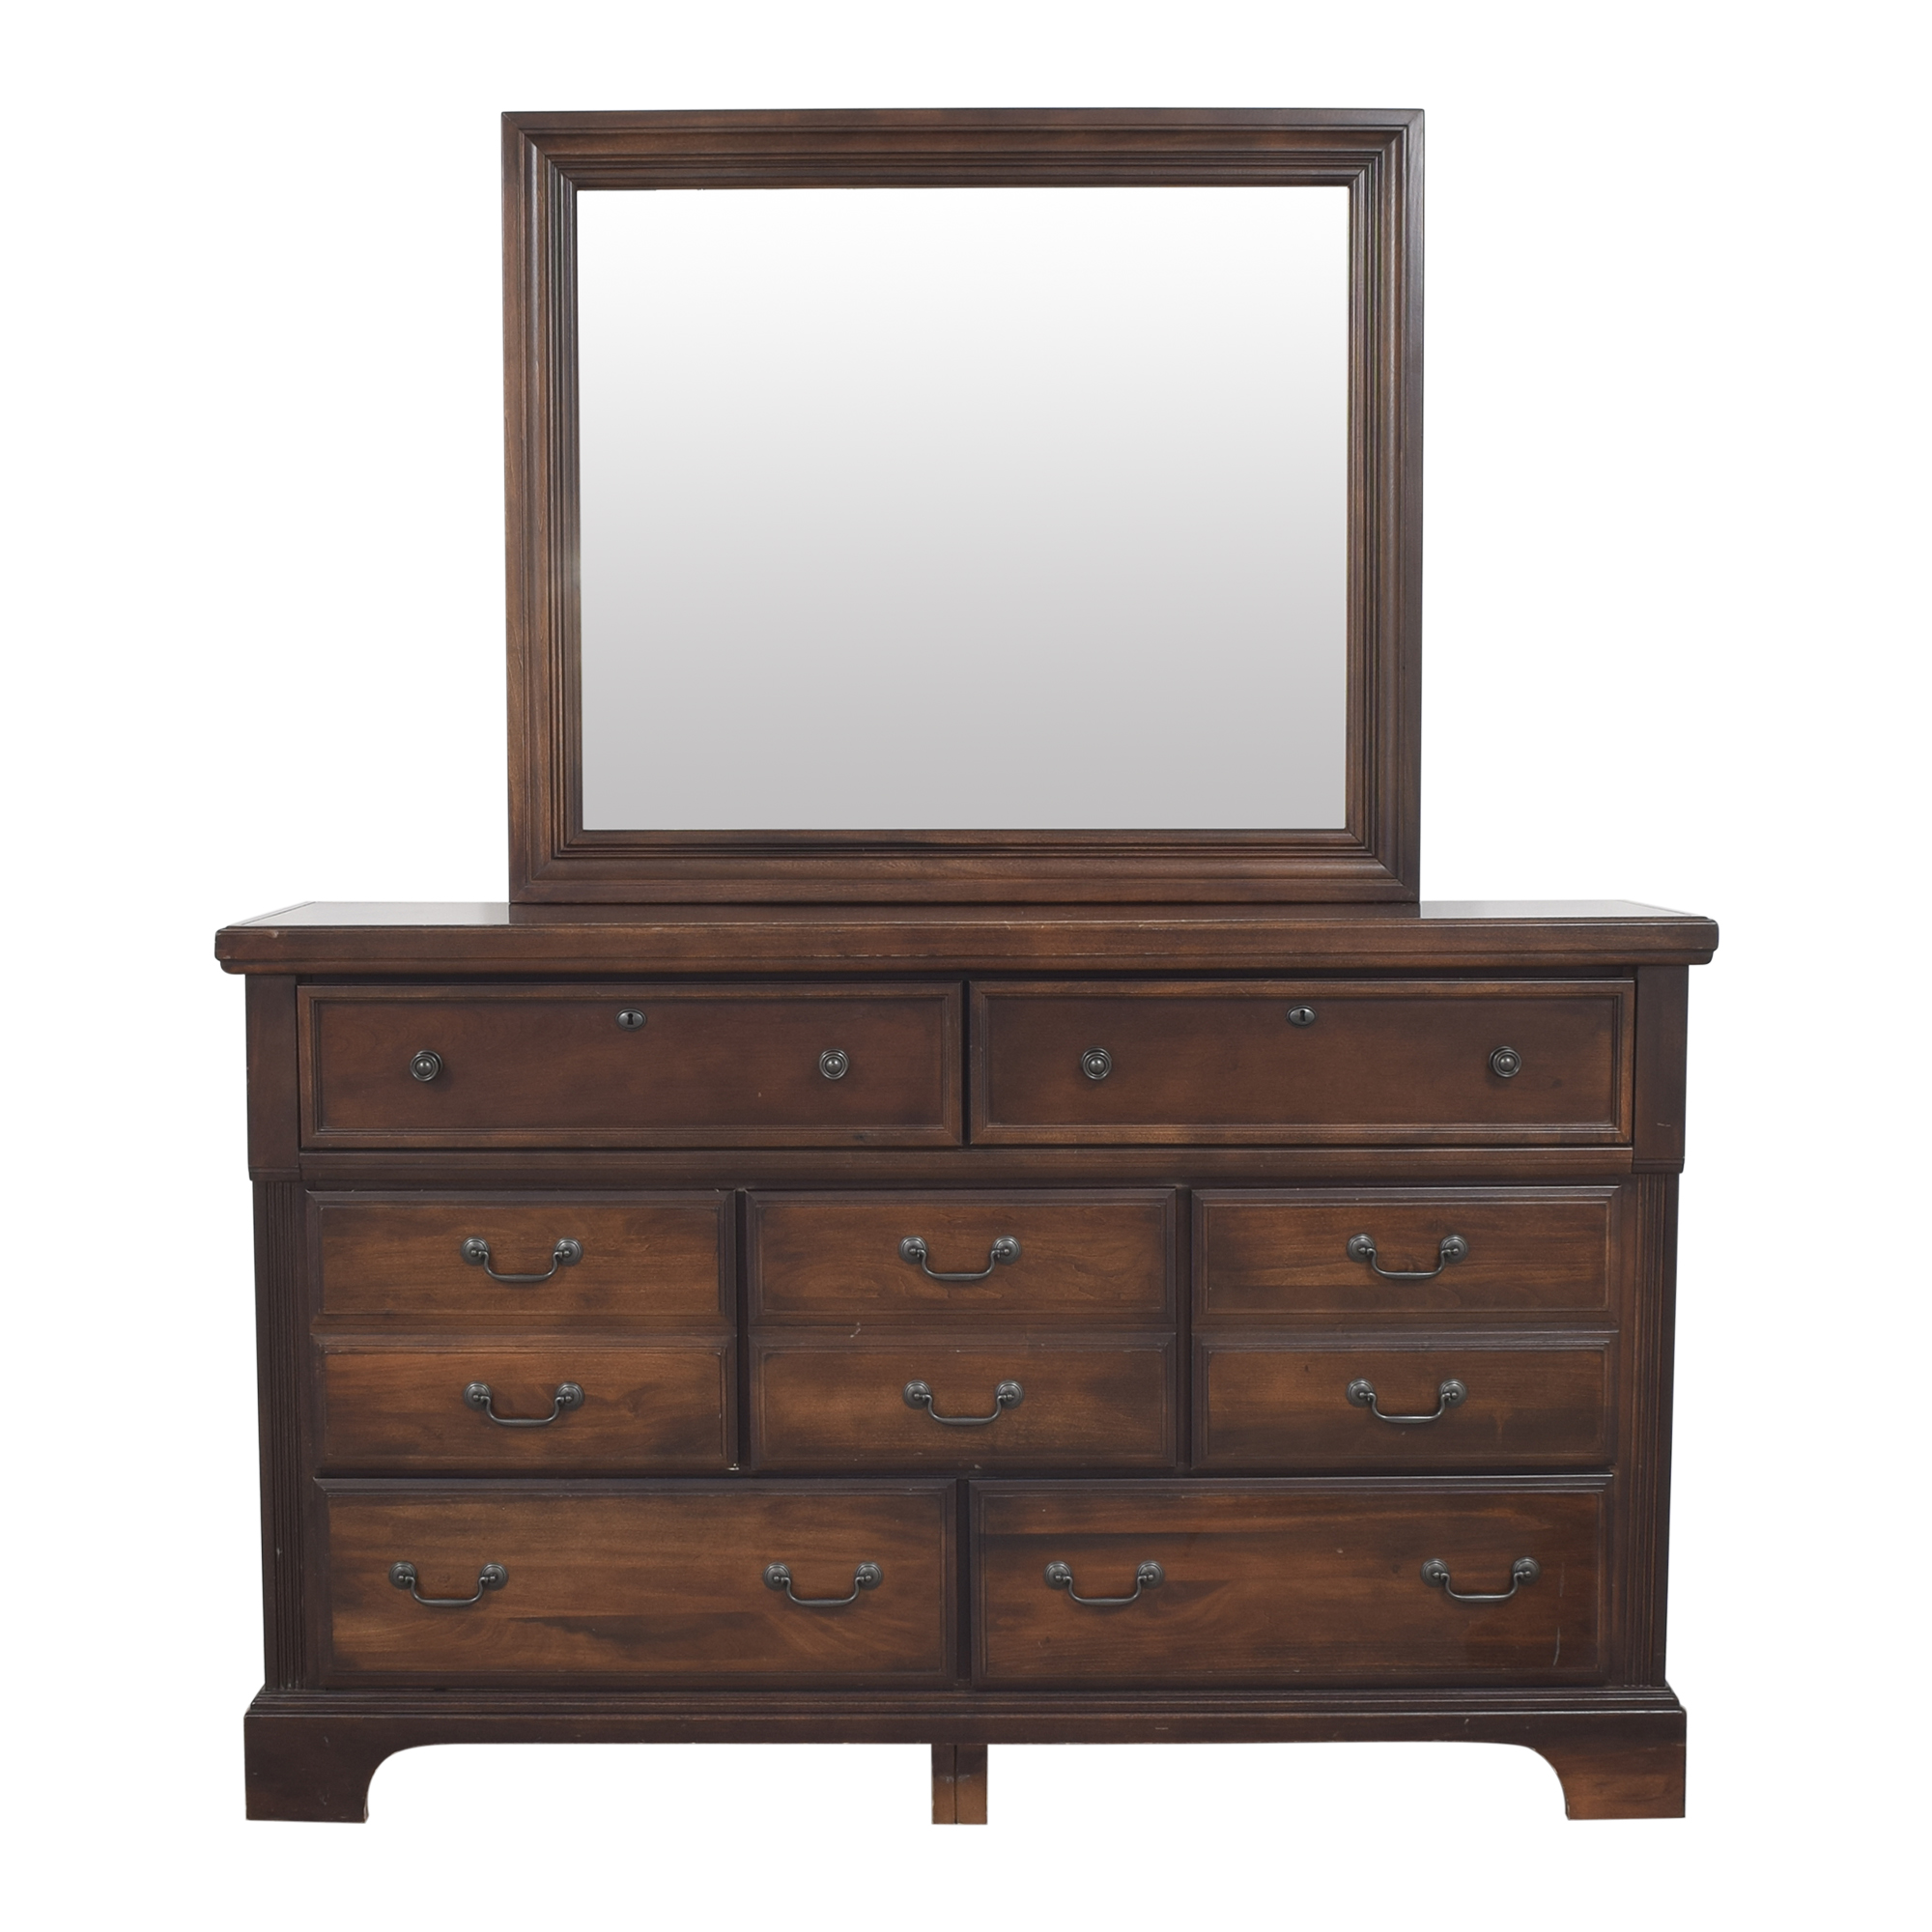 shop Vaughan-Bassett Triple Dresser with Mirror Vaughan-Bassett Dressers